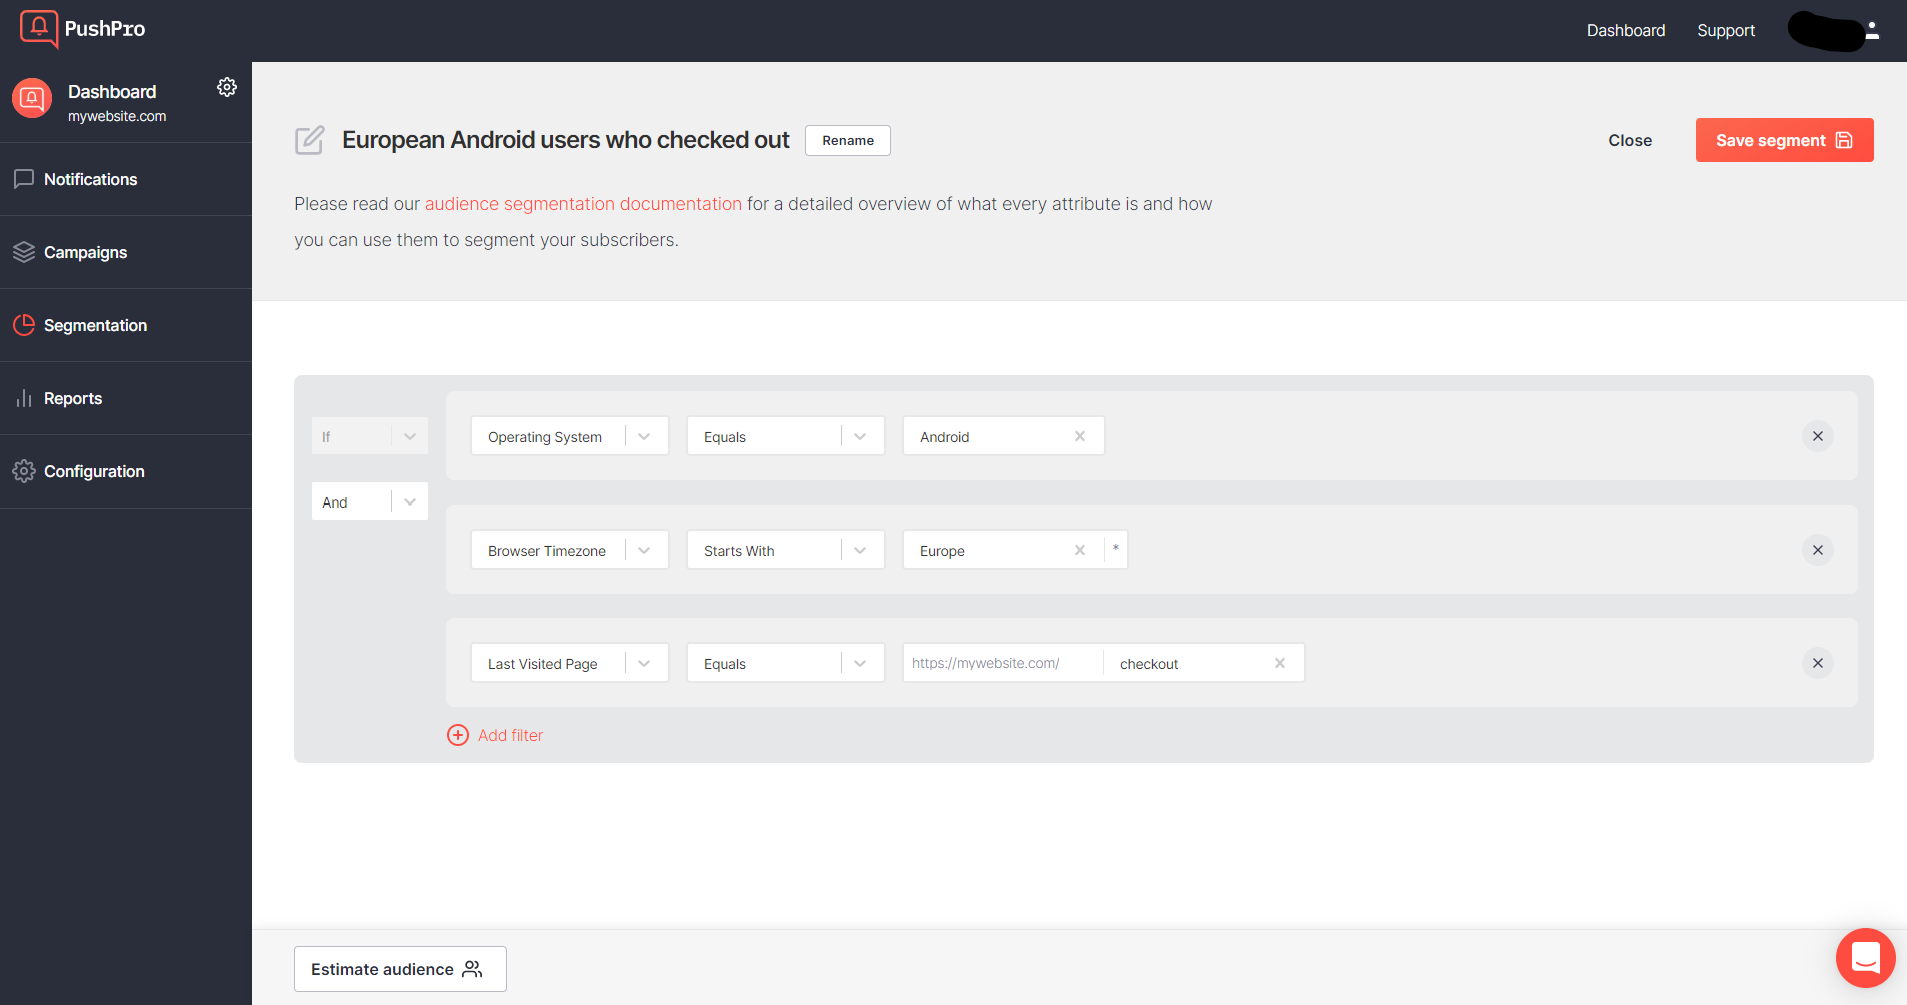 Screenshot showing where and how you can create segments in the PushPro portal